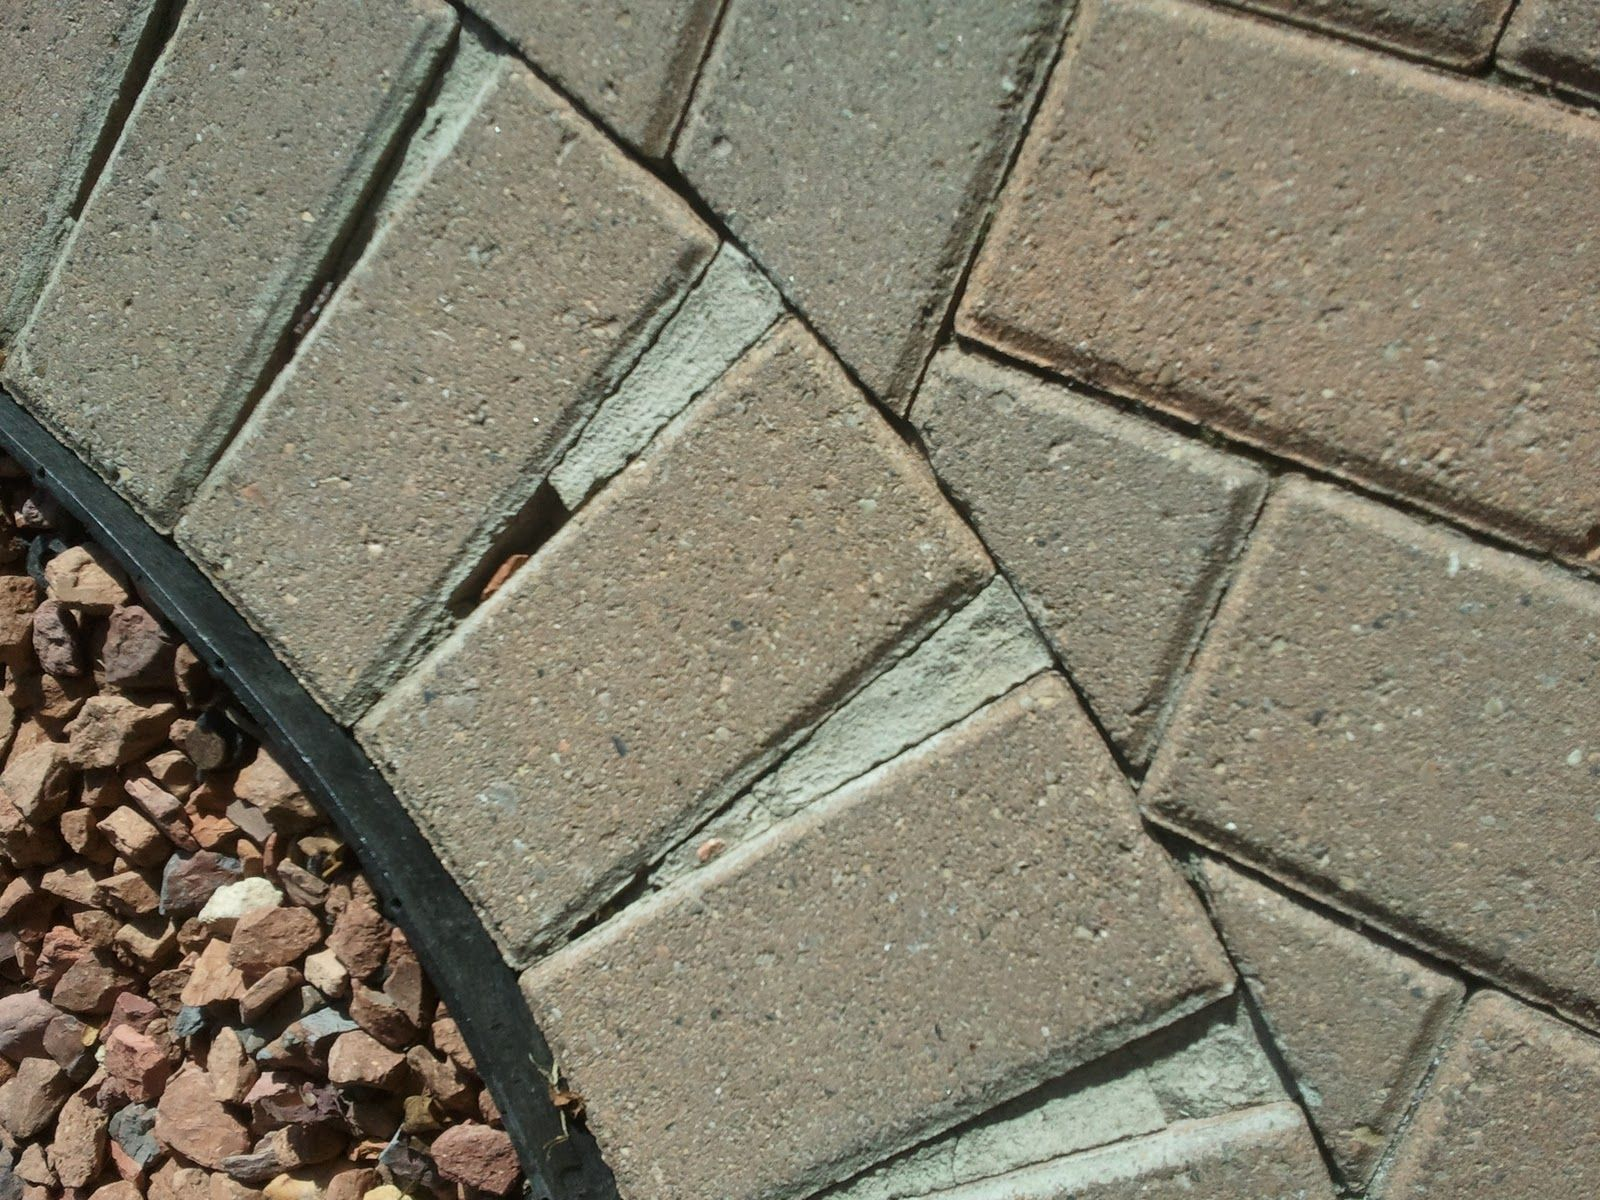 Laying Pavers Over Concrete Patio   Verandas Have Always Been Our Favorite  Place For Spending Leisure Hours, Be It Grilling